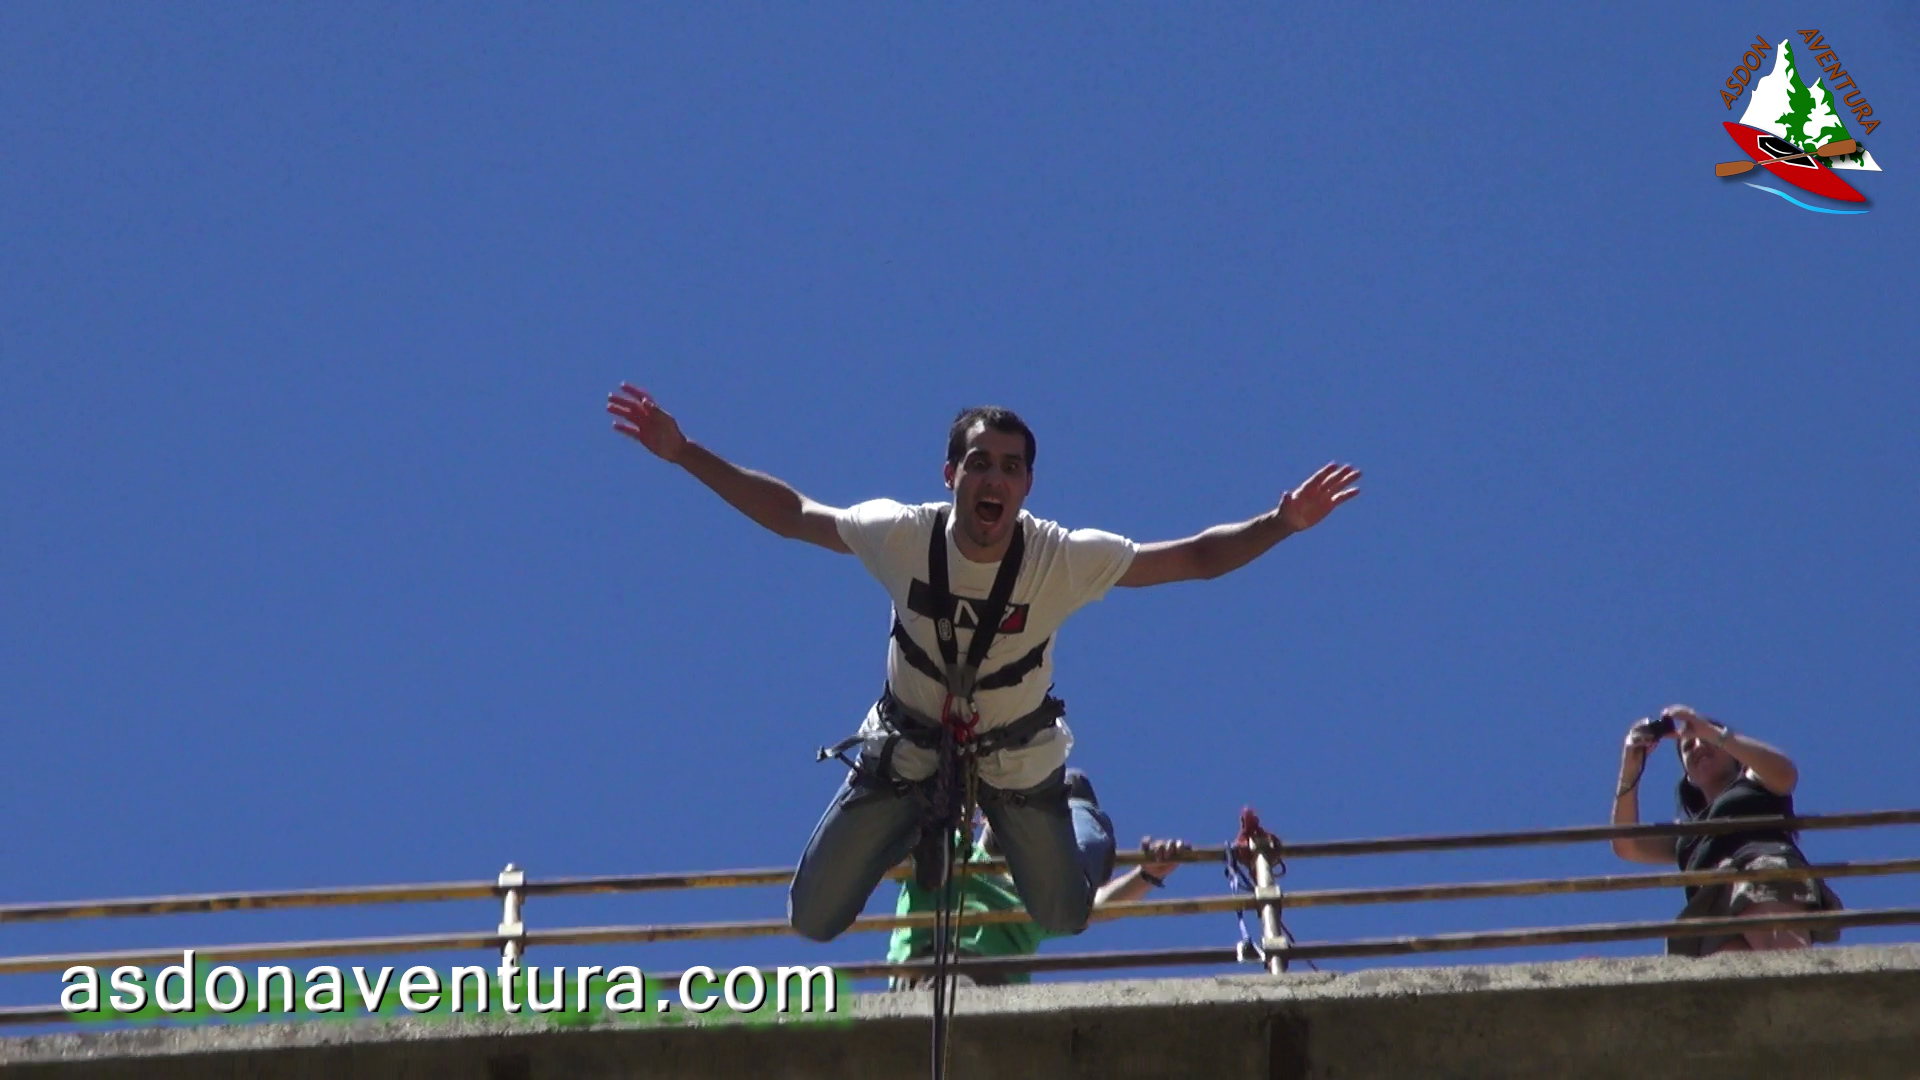 puenting con adrenalina total